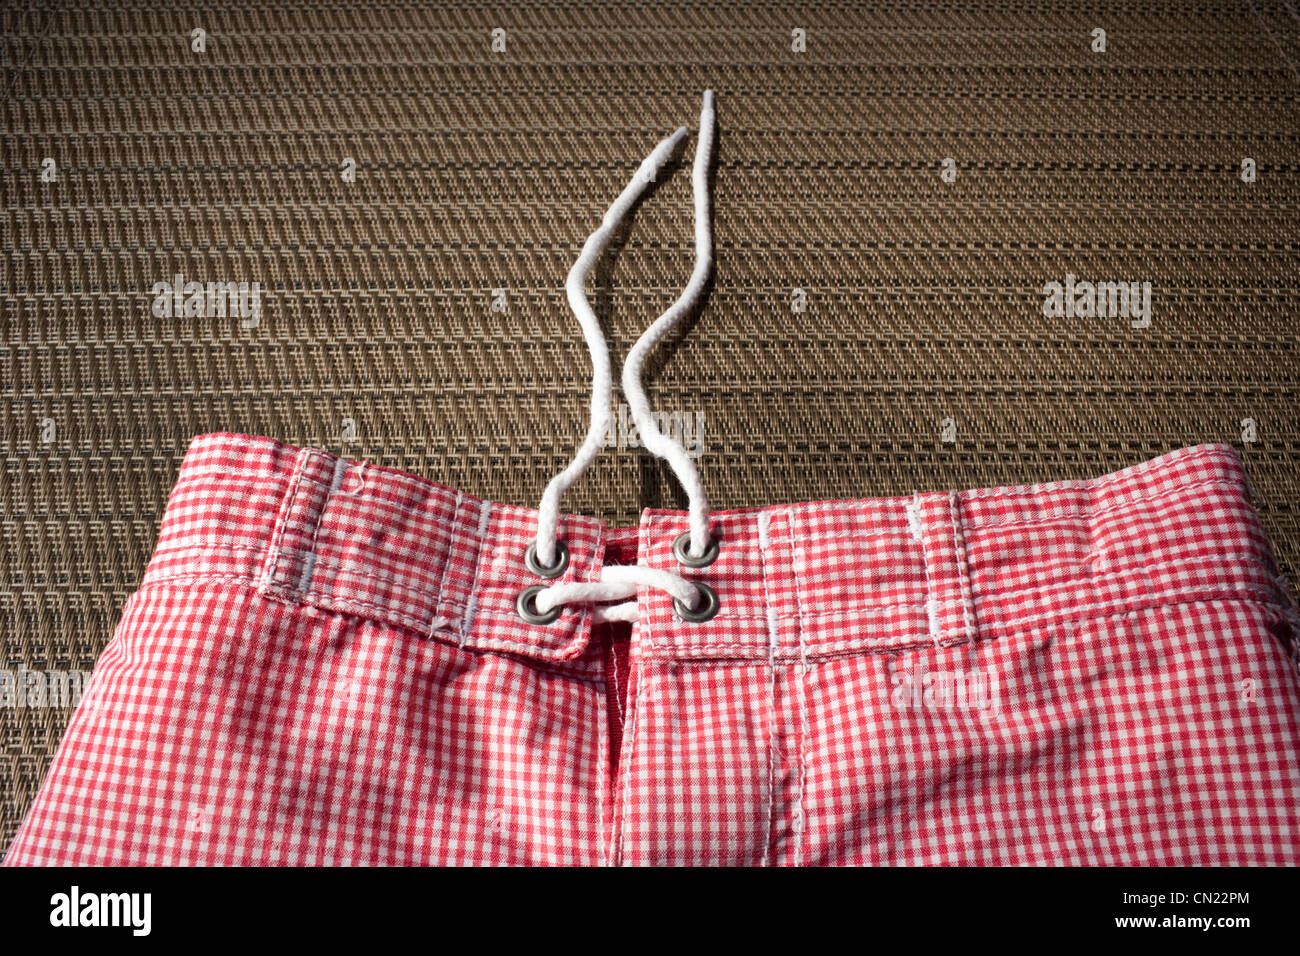 Red and white gingham swimming trunks - Stock Image